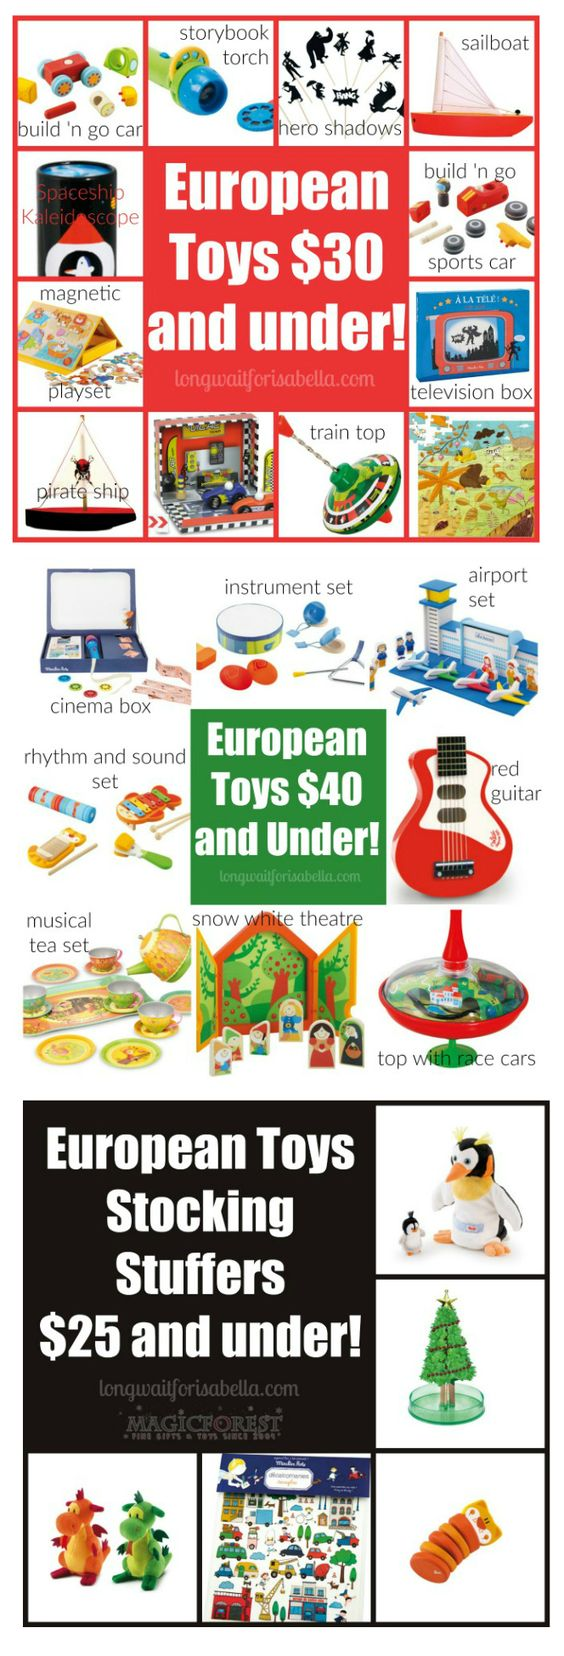 European Toys for Every Budget AD